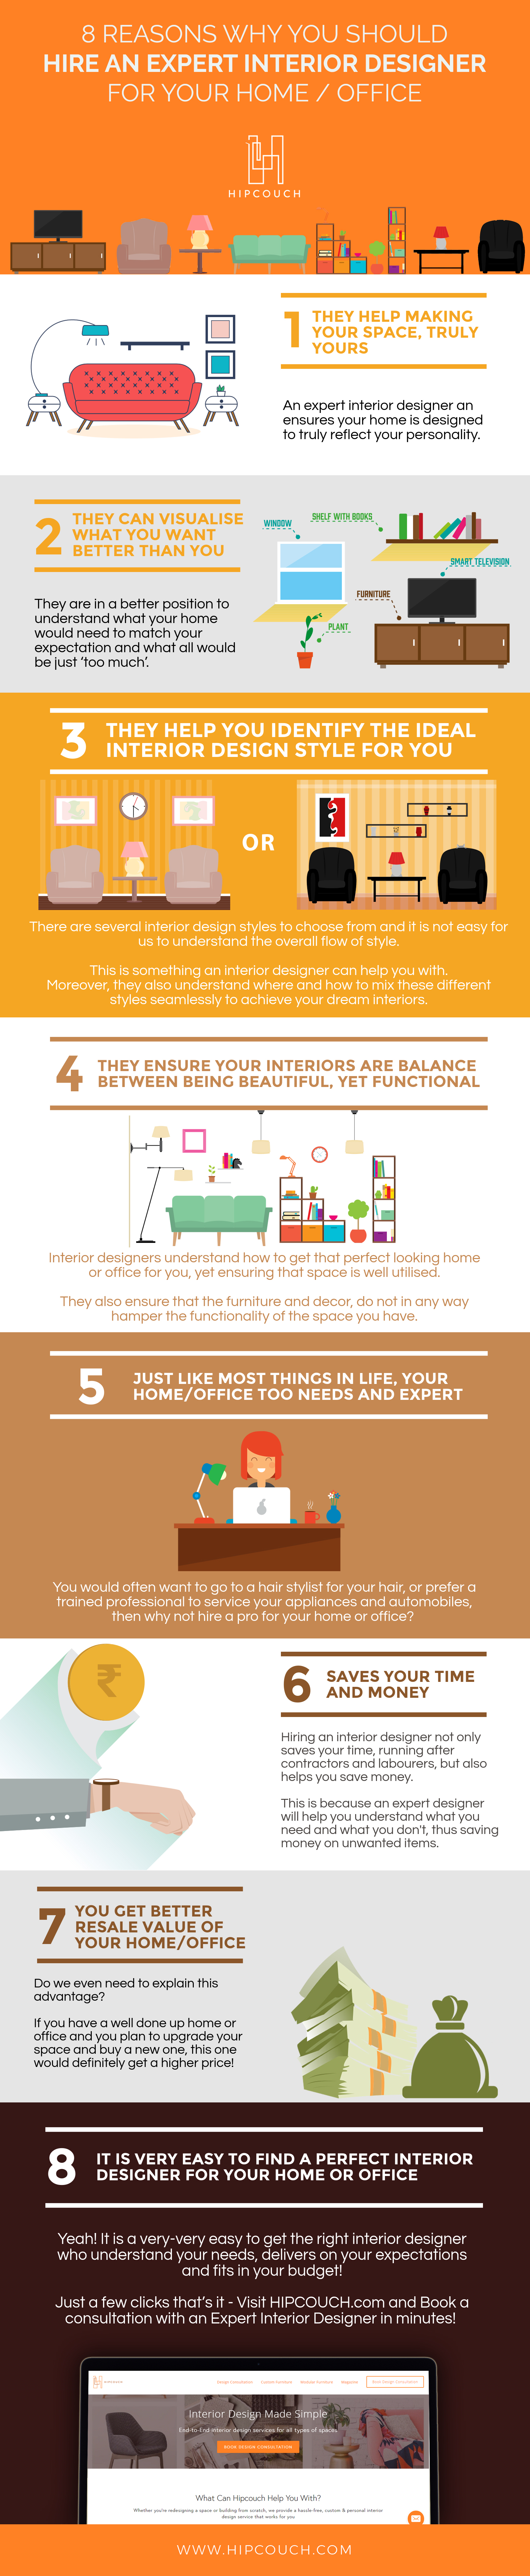 8 Reasons WHY you should hire an Interior Designer